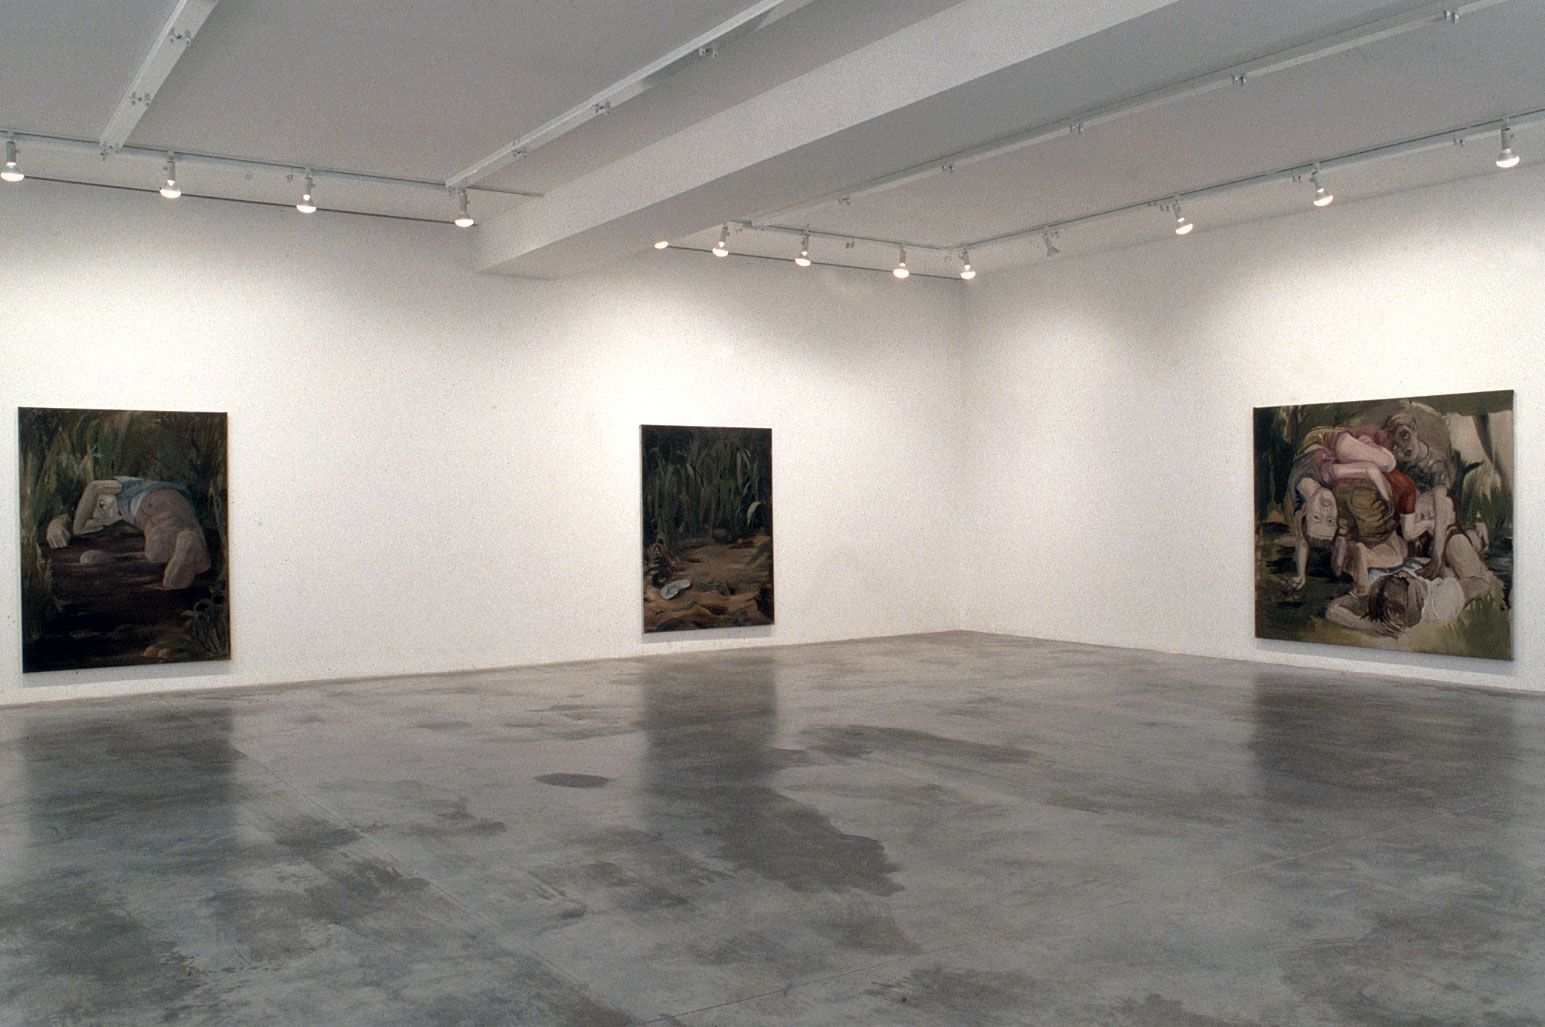 Julian Trigo, Installation view